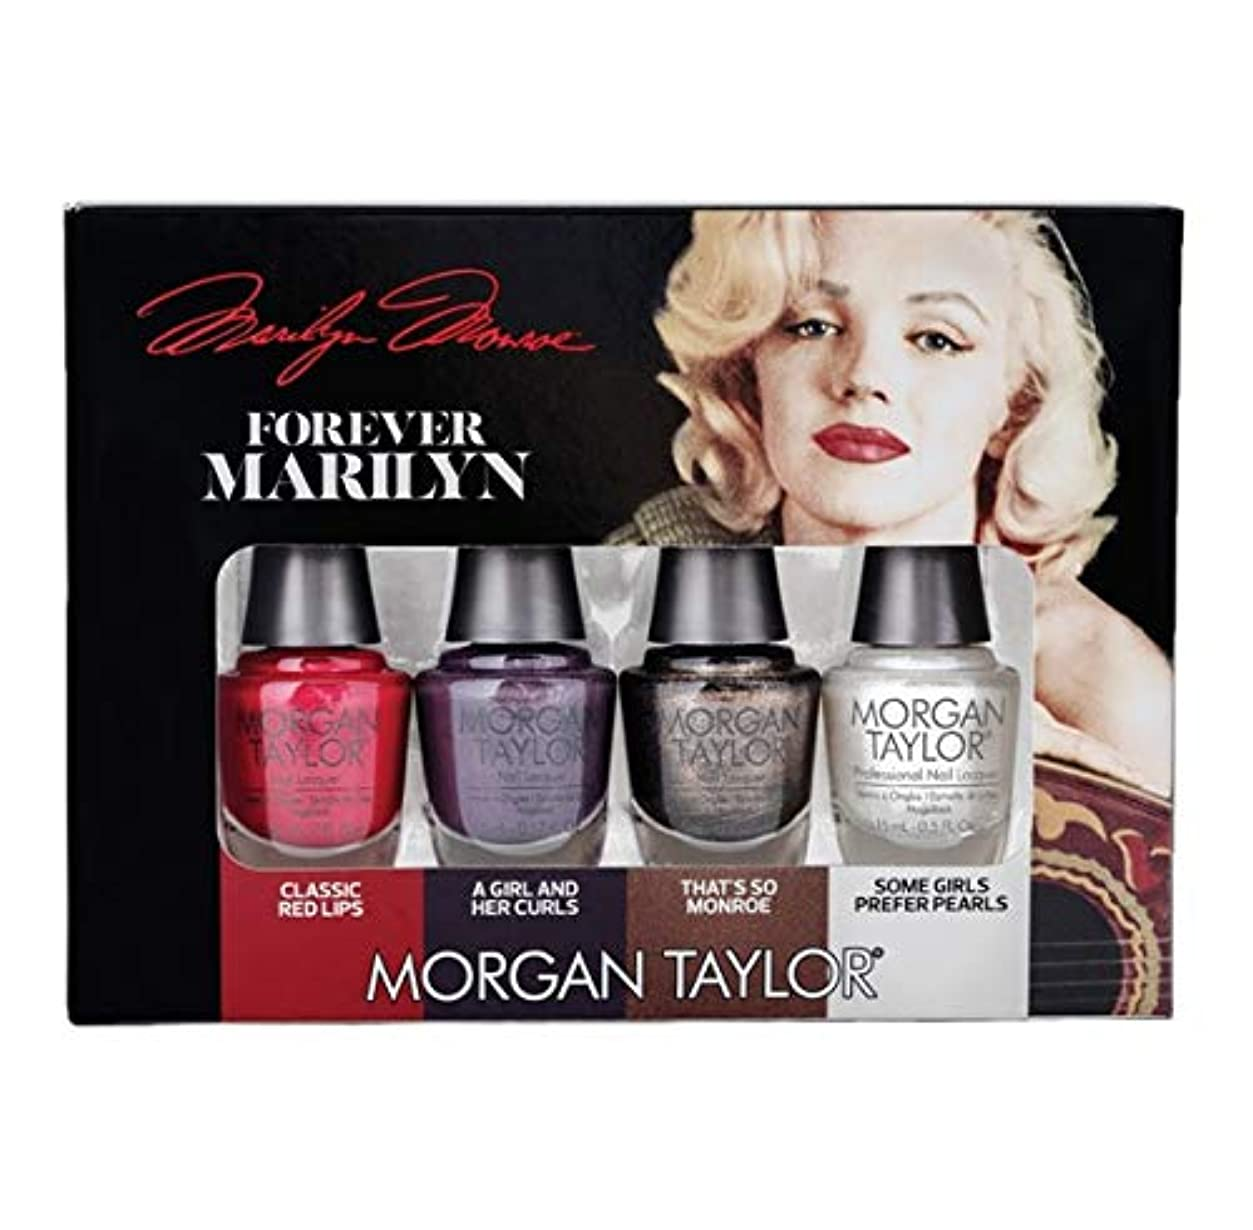 Morgan Taylor Nail Lacquer - Forever Marilyn Fall 2019 Collection - Mini 4 Pack - 5ml / 0.17oz Each